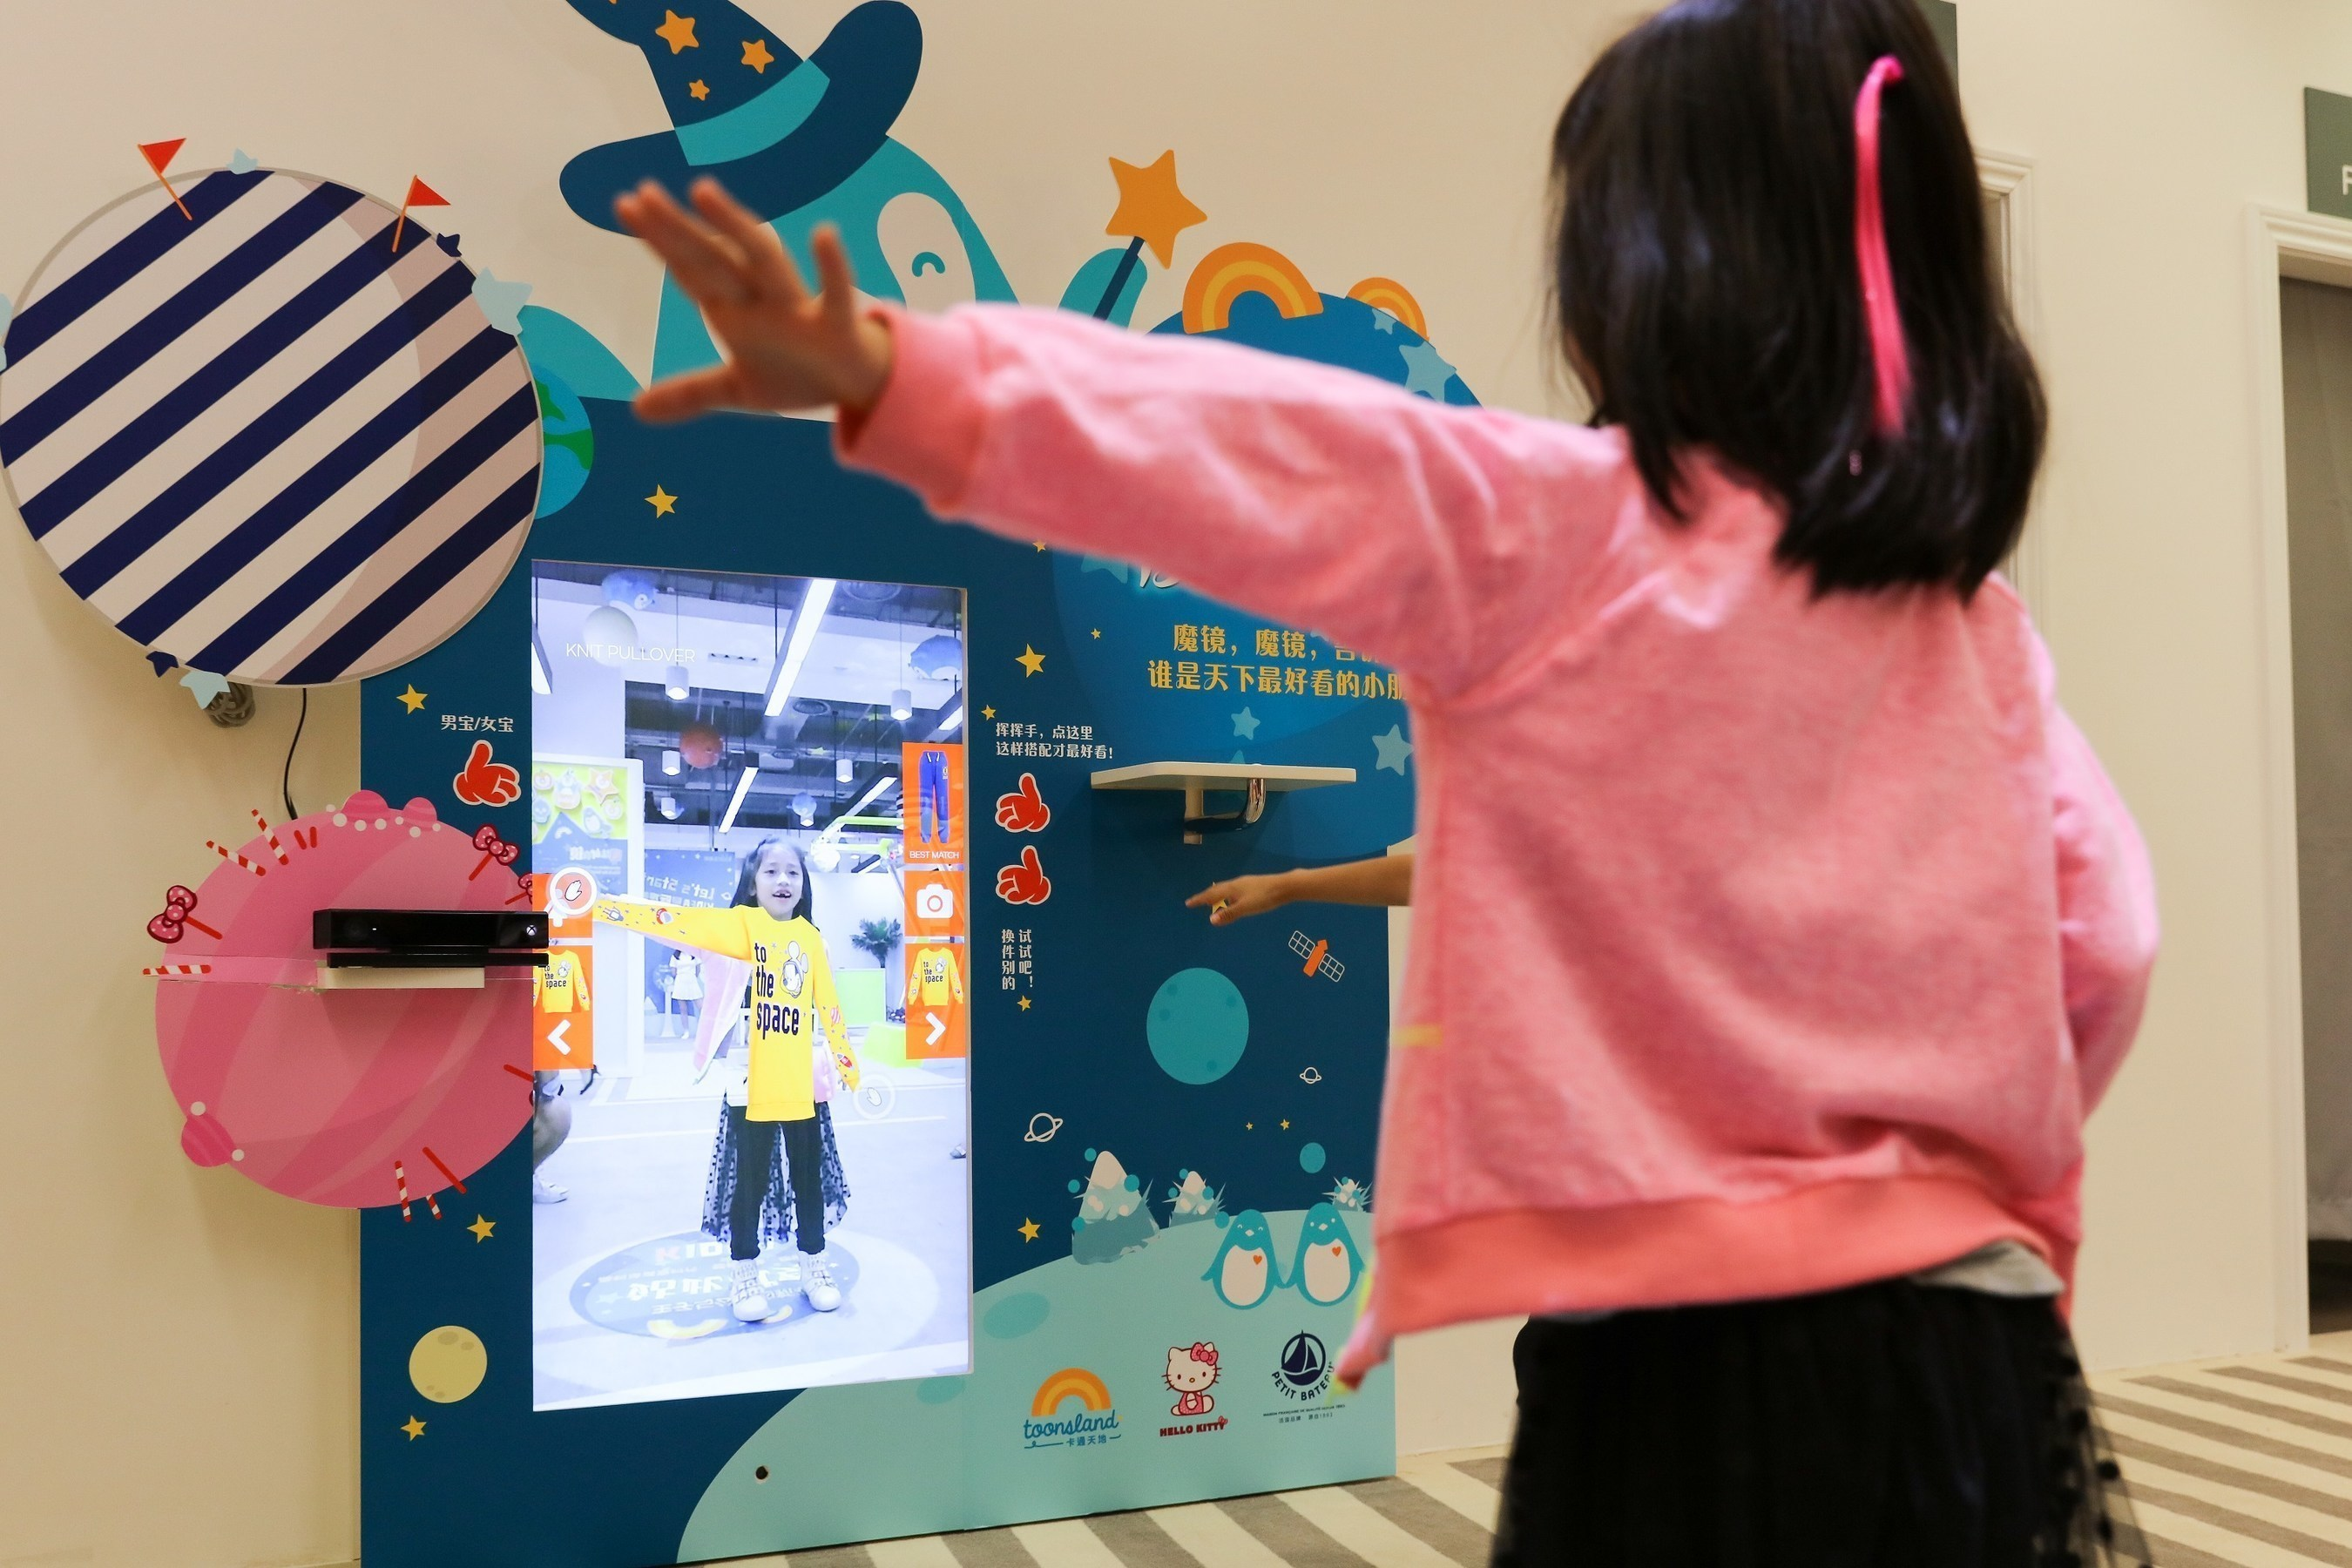 A magical moment for any child: posing in front of a magic mirror, just one experience at Explorium, the Fung Group's laboratory in Shanghai to explore the future of retail.